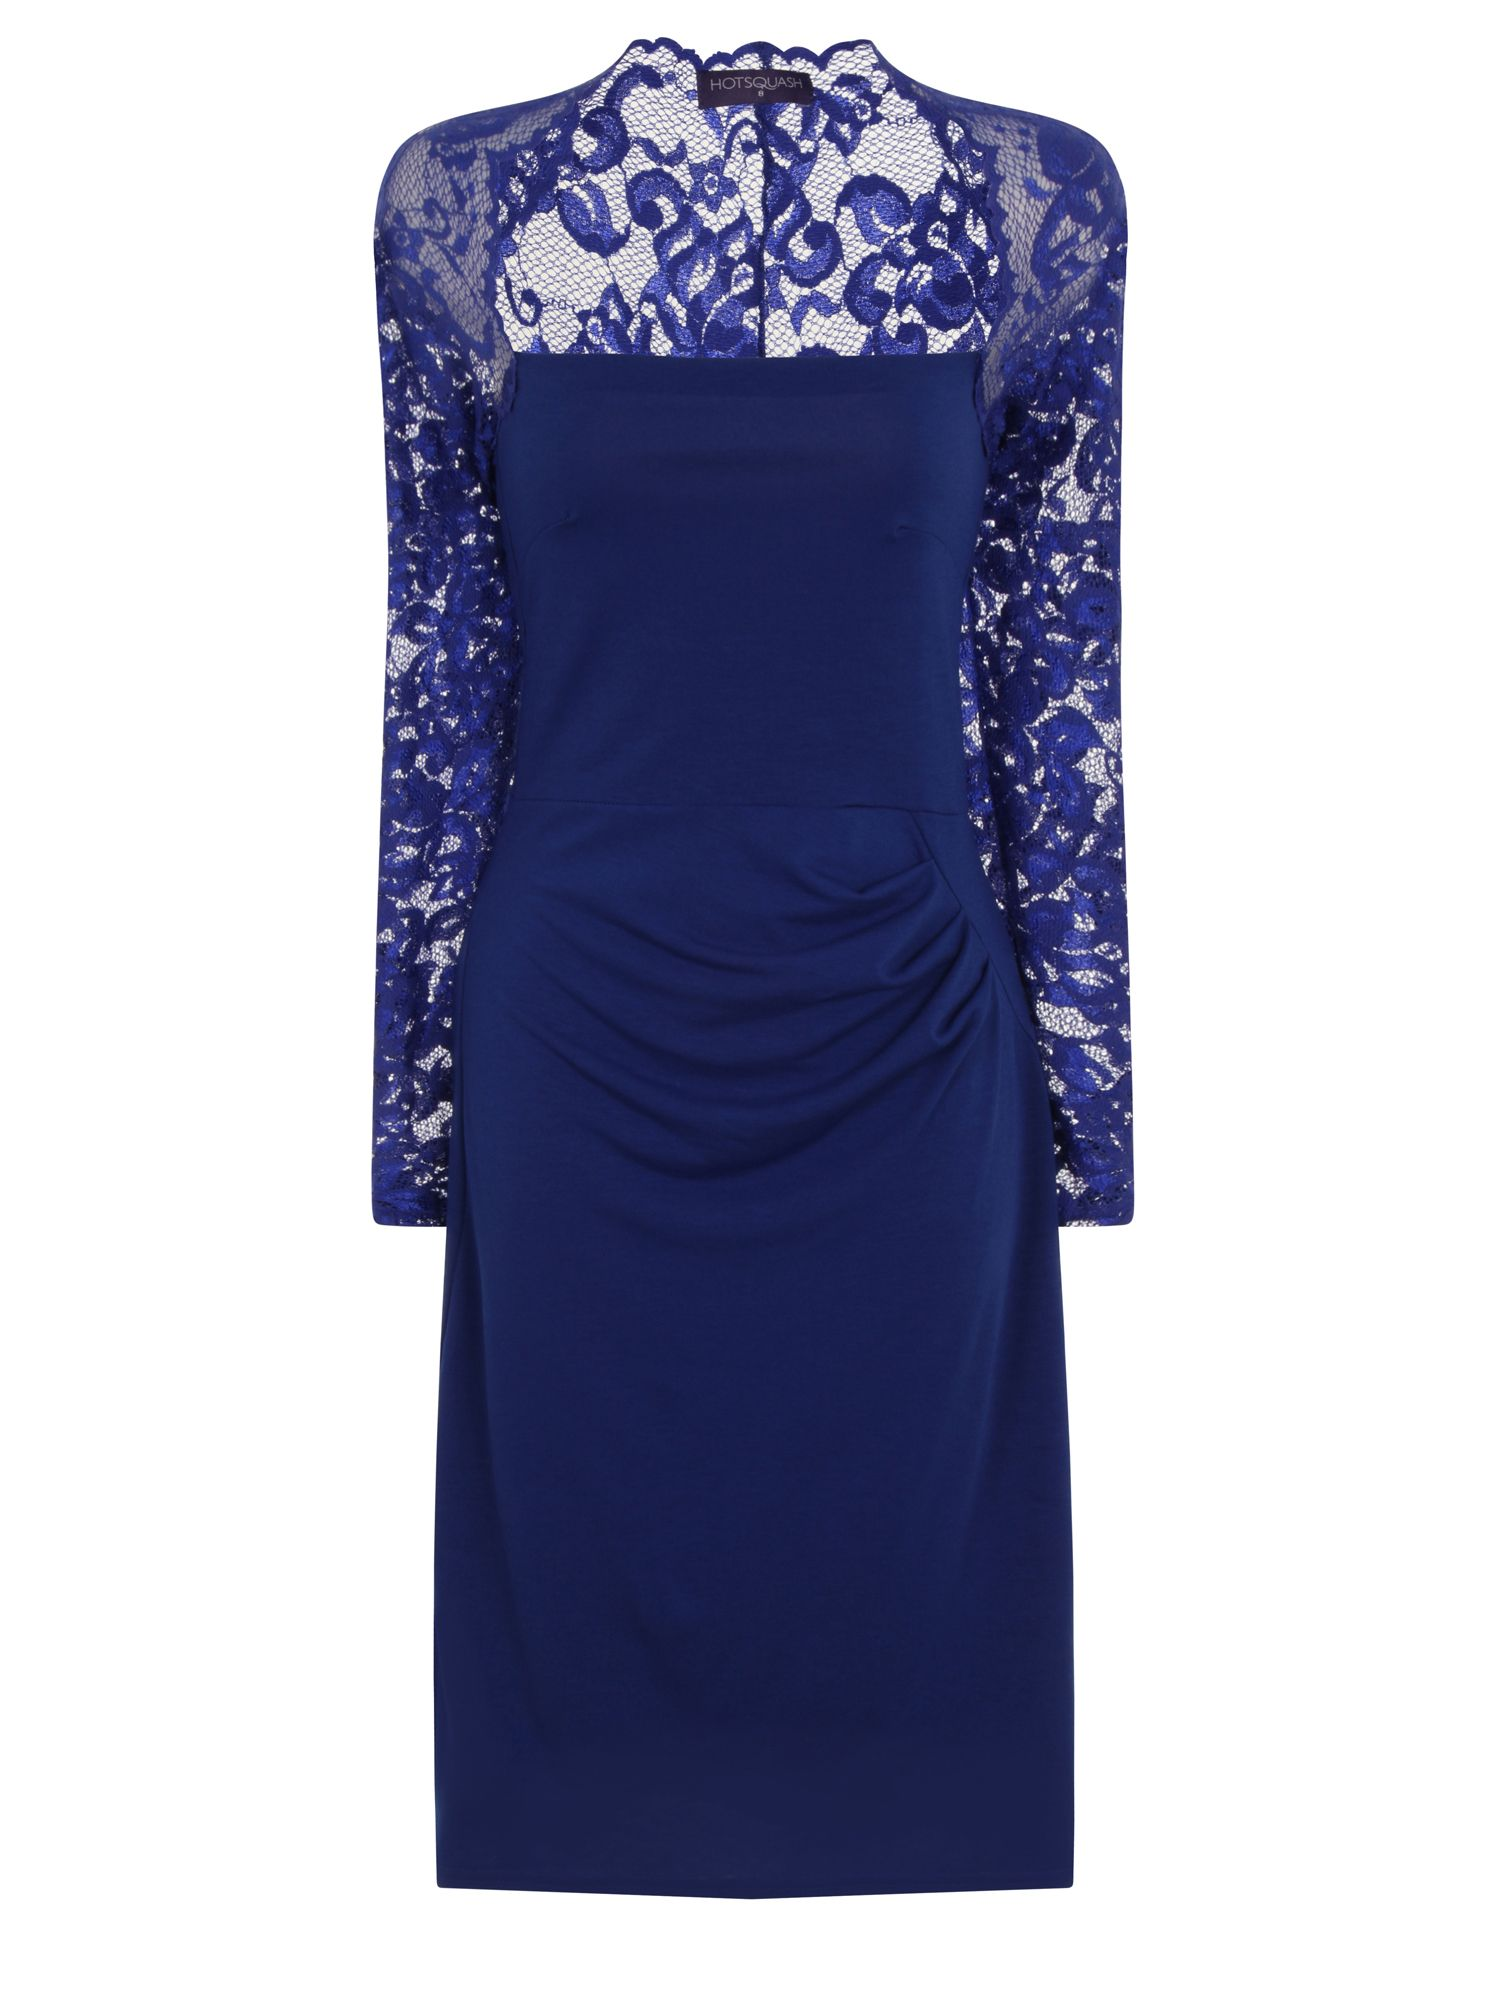 HotSquash Lace Sleeved Dress In Clever Fabric, Royal Blue Marl